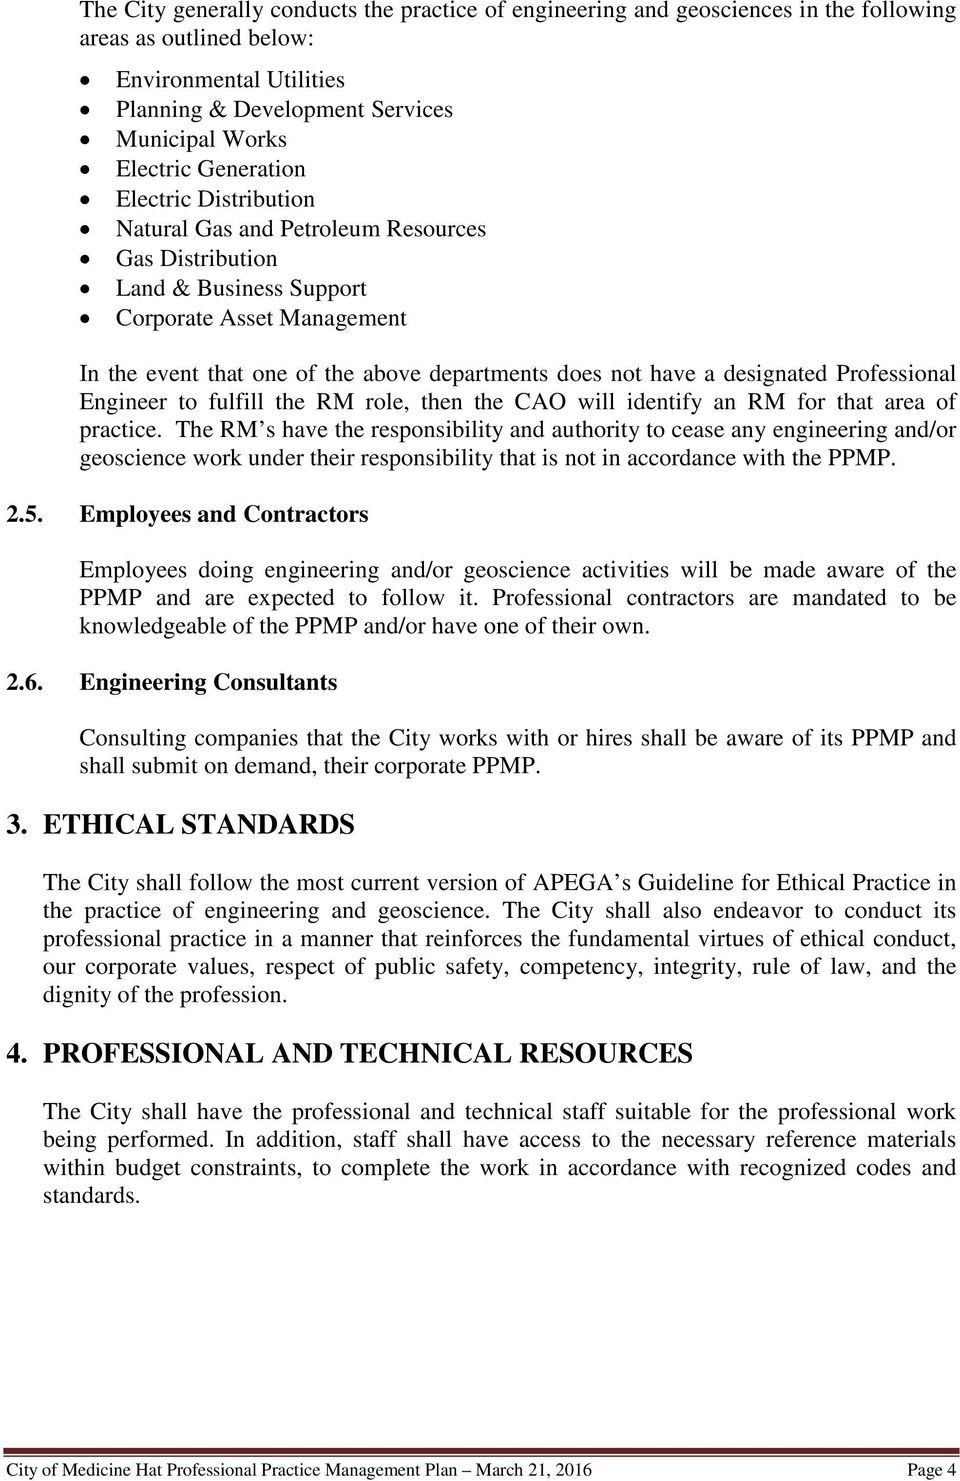 designated Professional Engineer to fulfill the RM role, then the CAO will identify an RM for that area of practice.